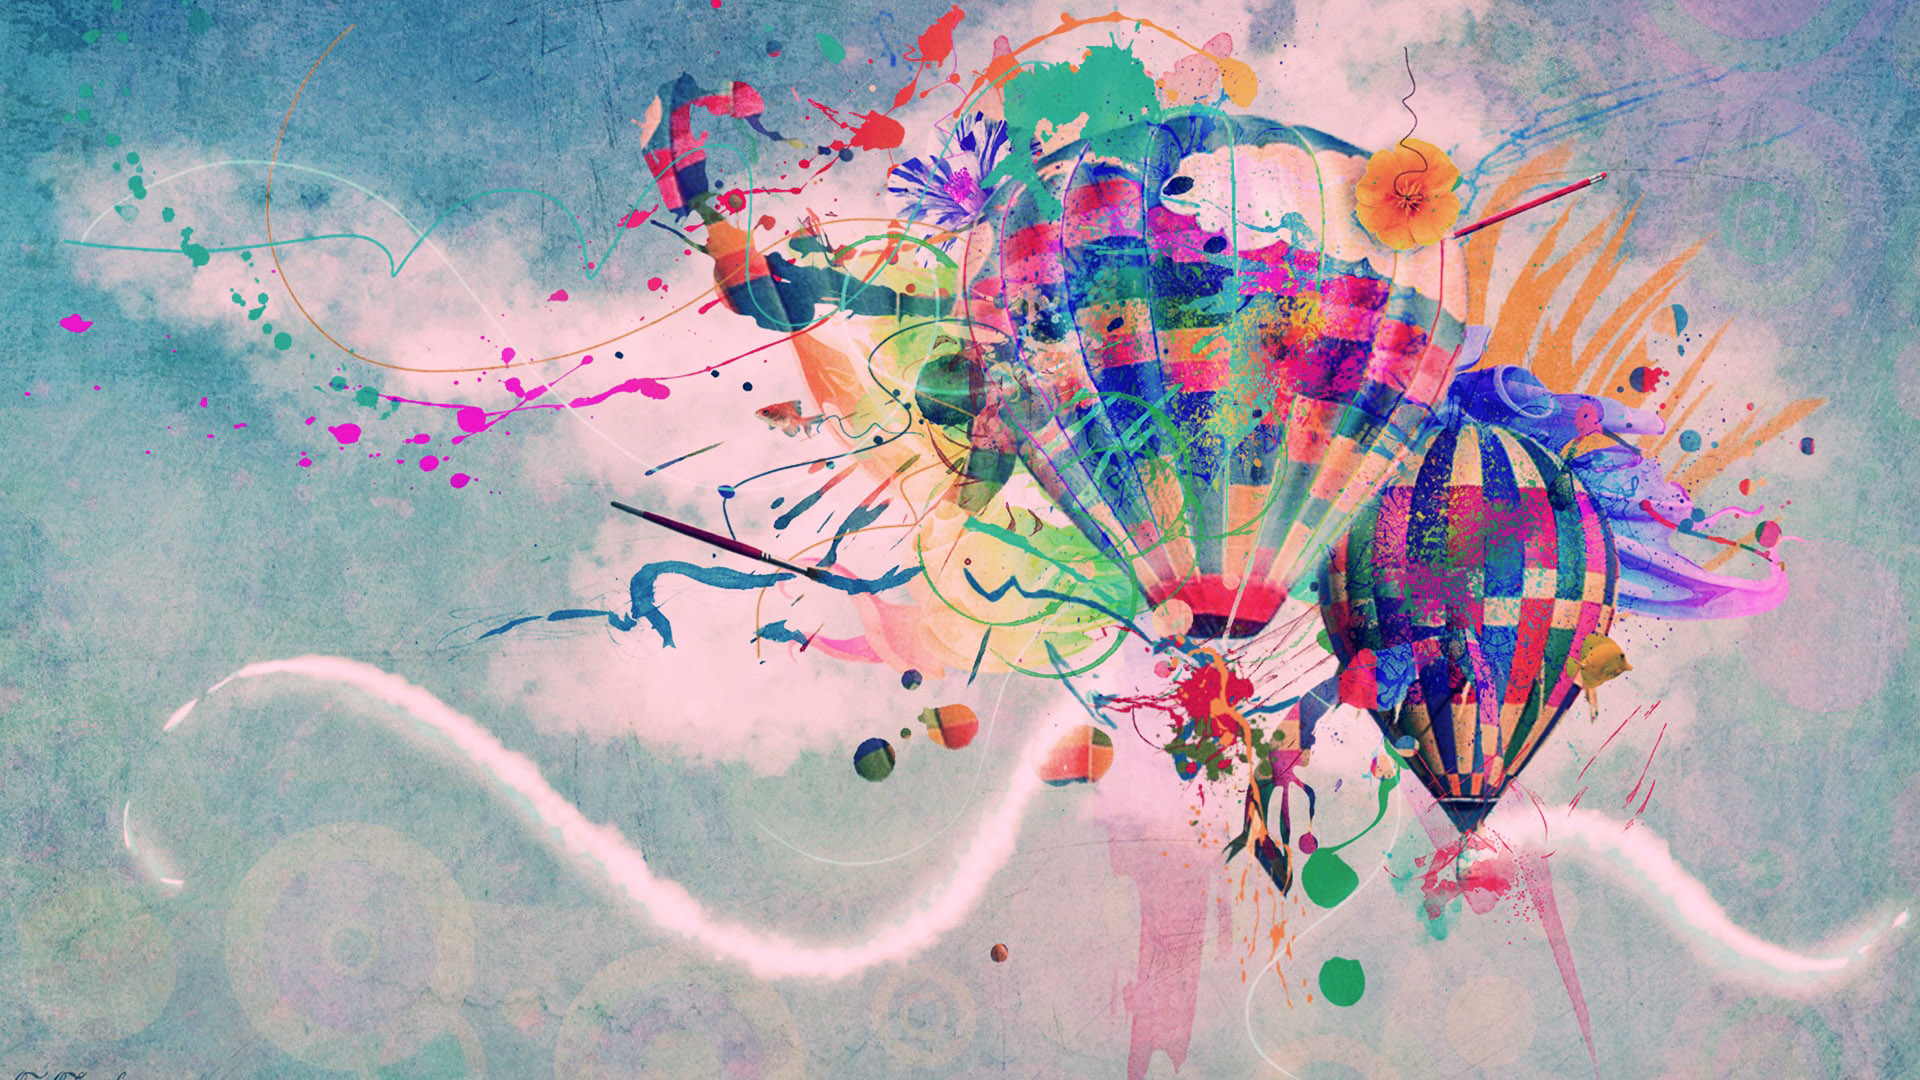 Abstract Hot Air Balloon Wallpaper